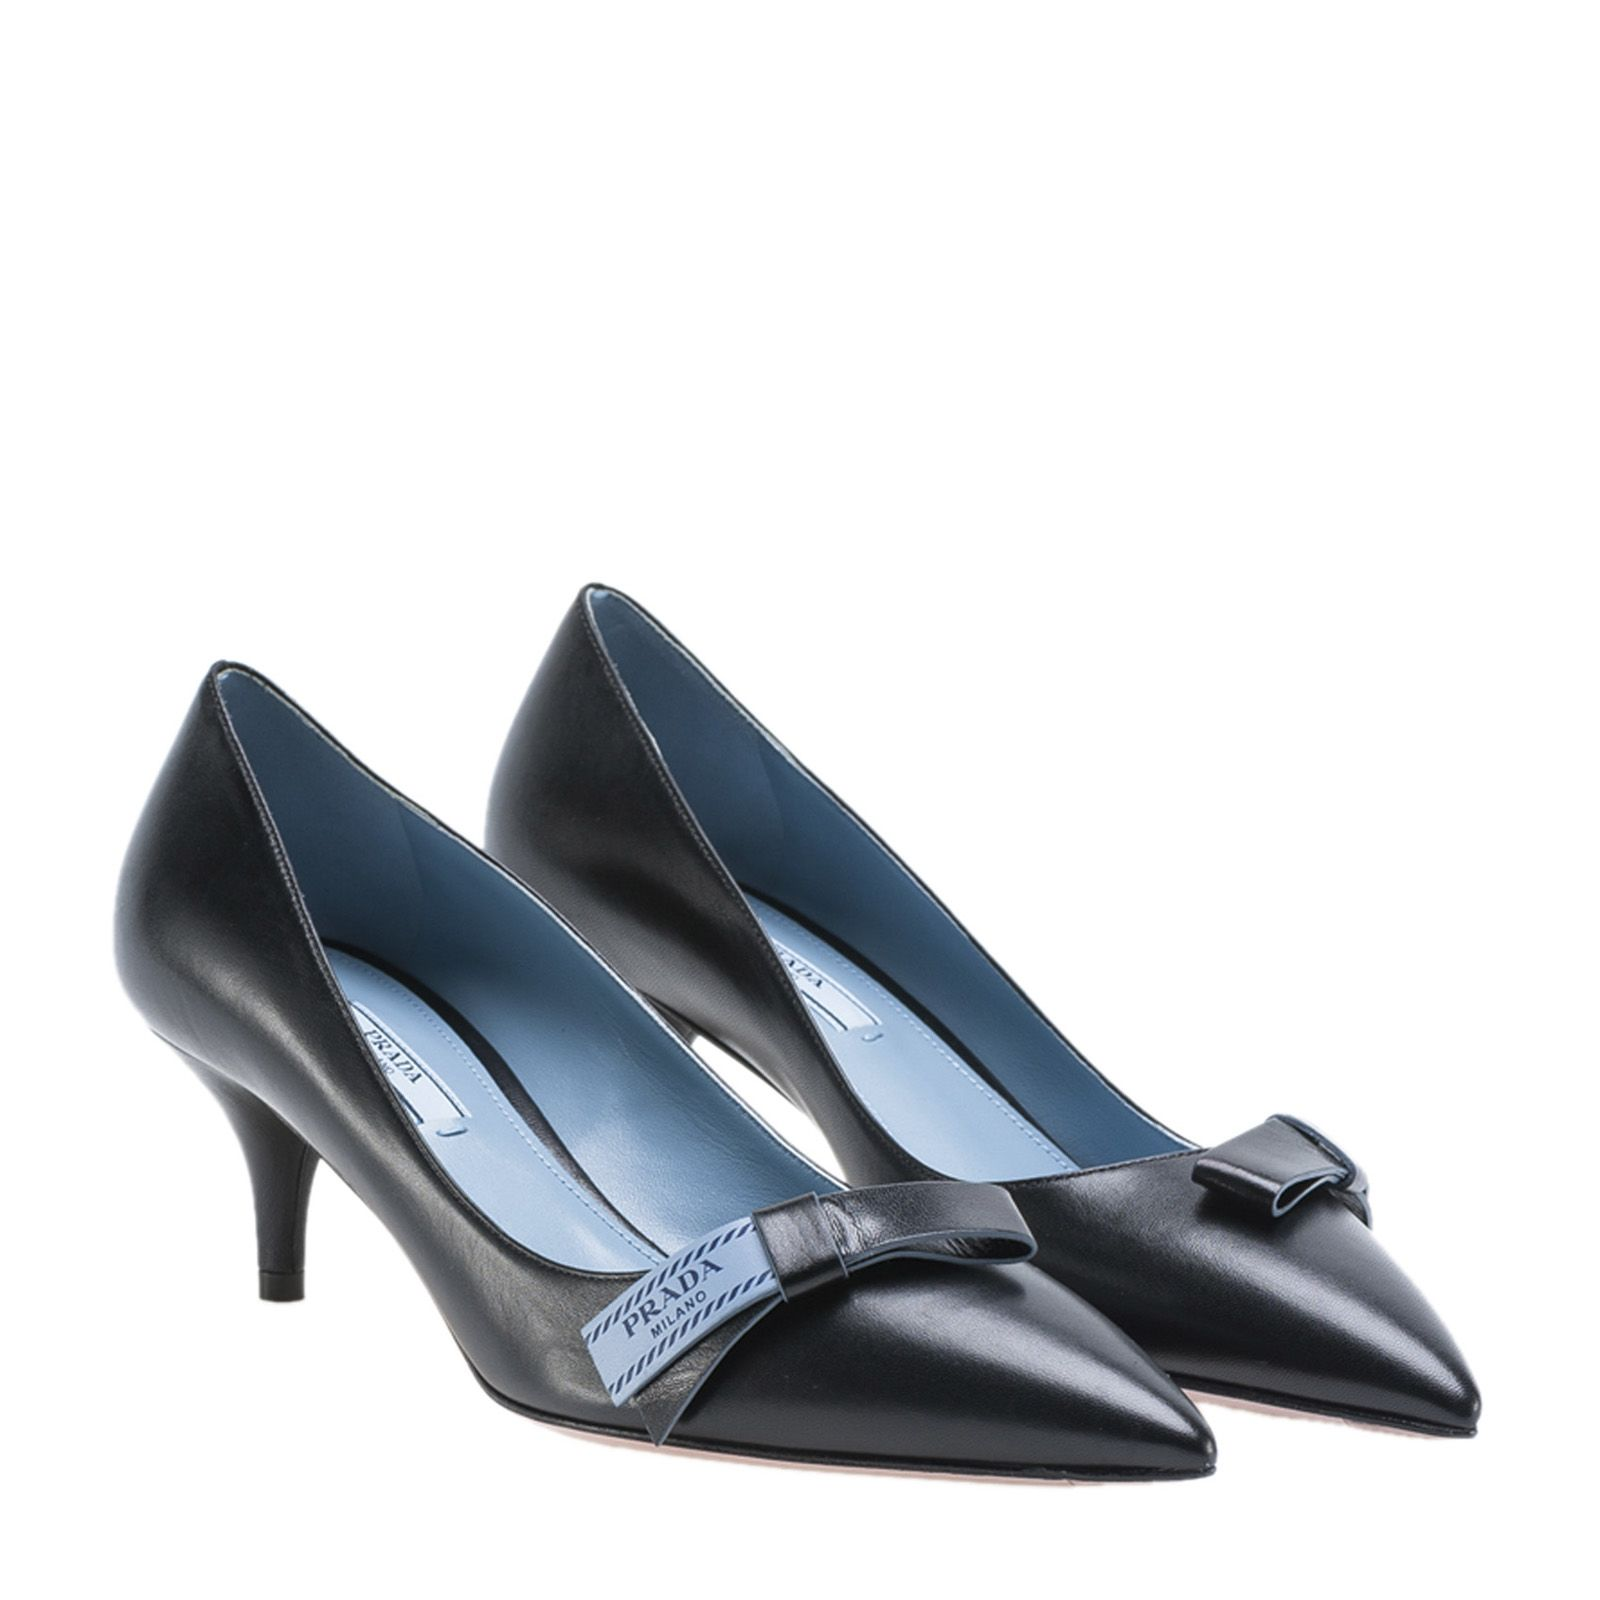 bow-embellished pumps - Black Prada